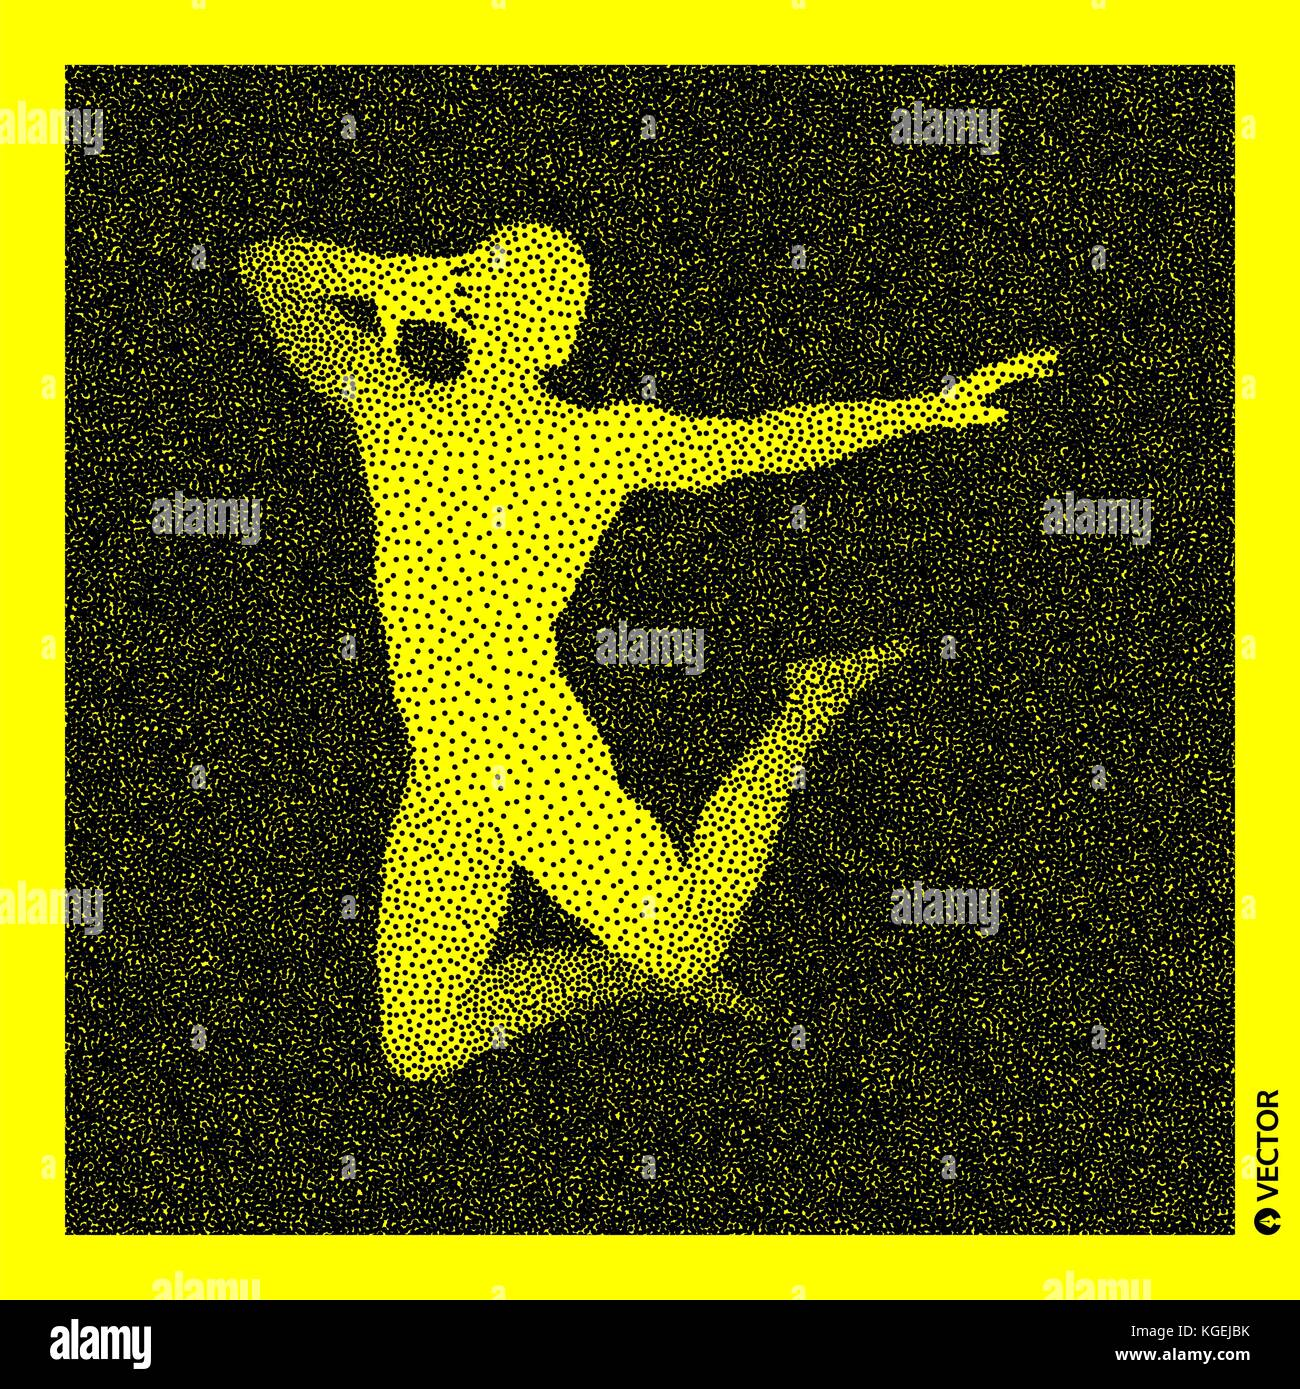 Dancer. 3D Human Body Model. Black and yellow grainy design. Stippled vector illustration. - Stock Vector